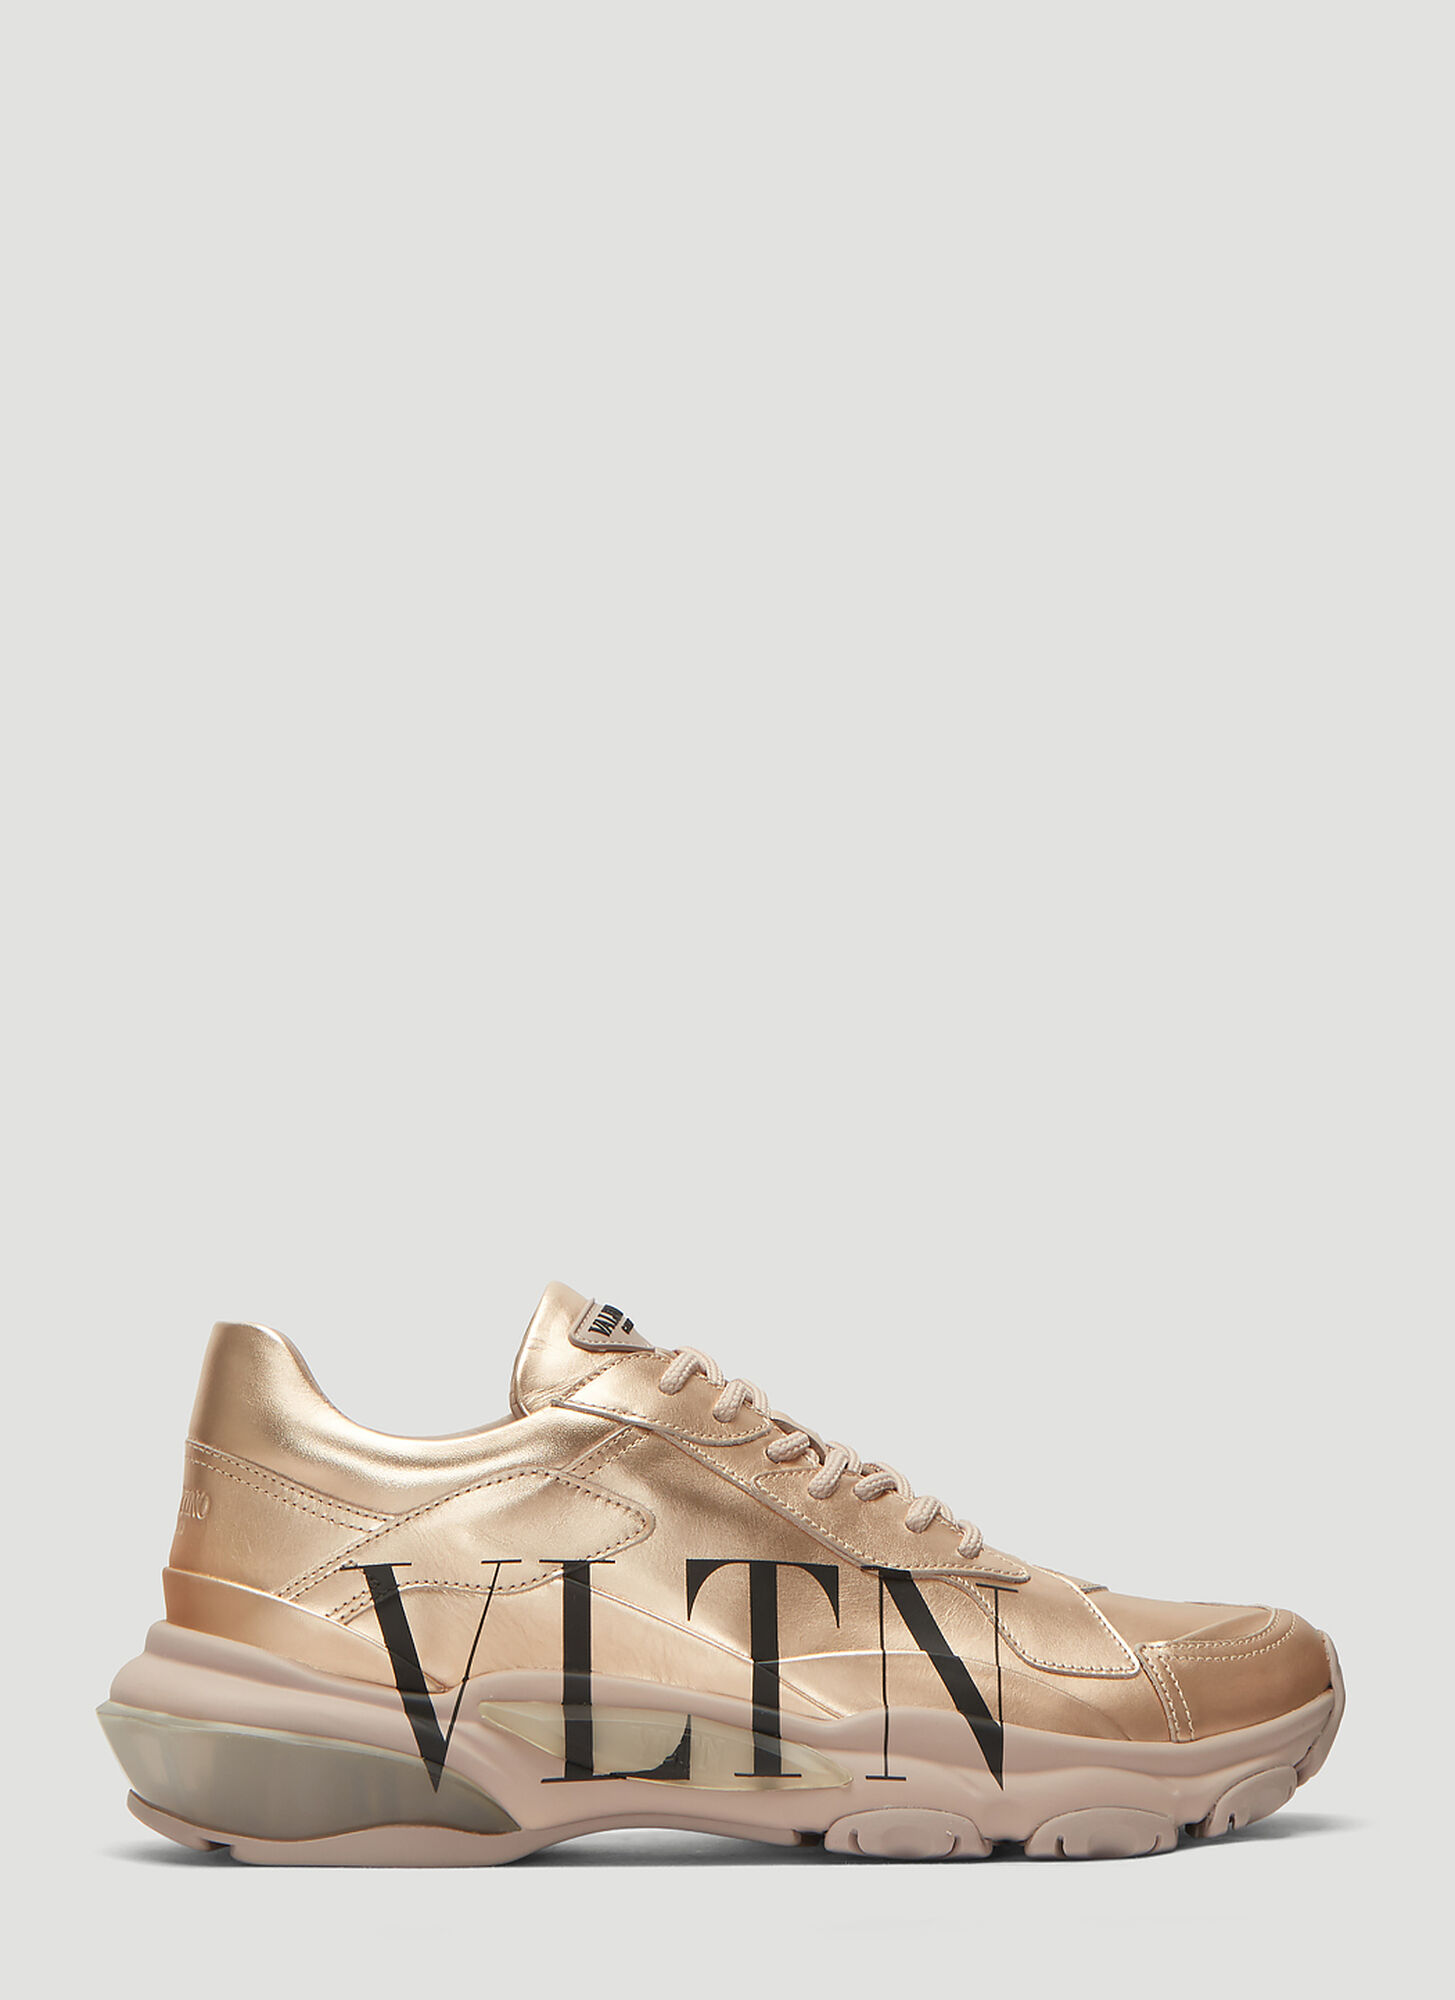 Valentino VLTN Chunky Sneakers in Pink